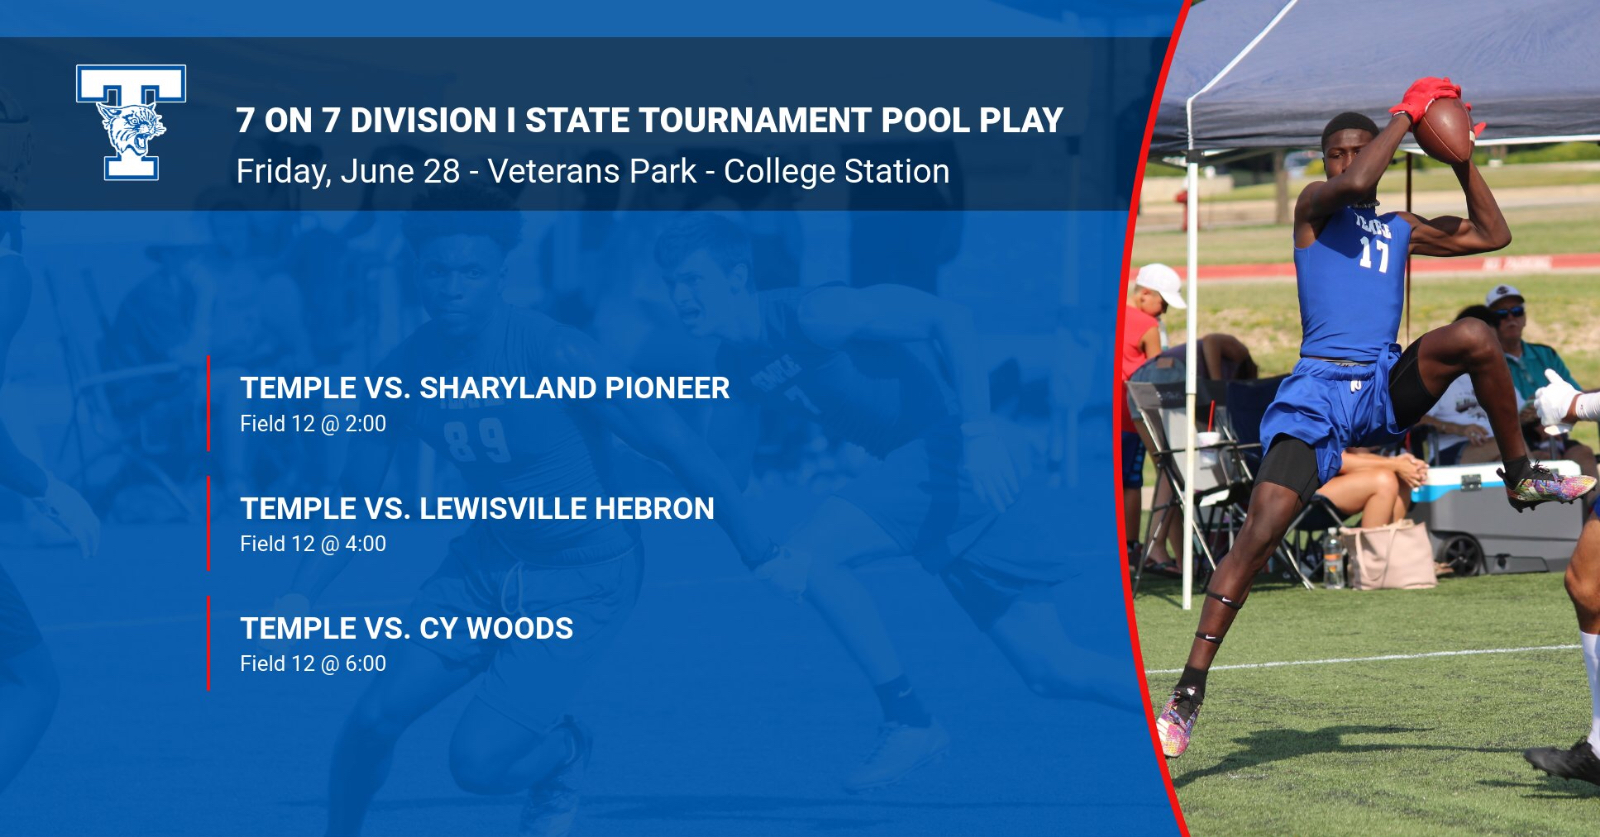 7 on 7 schedule for state tournament